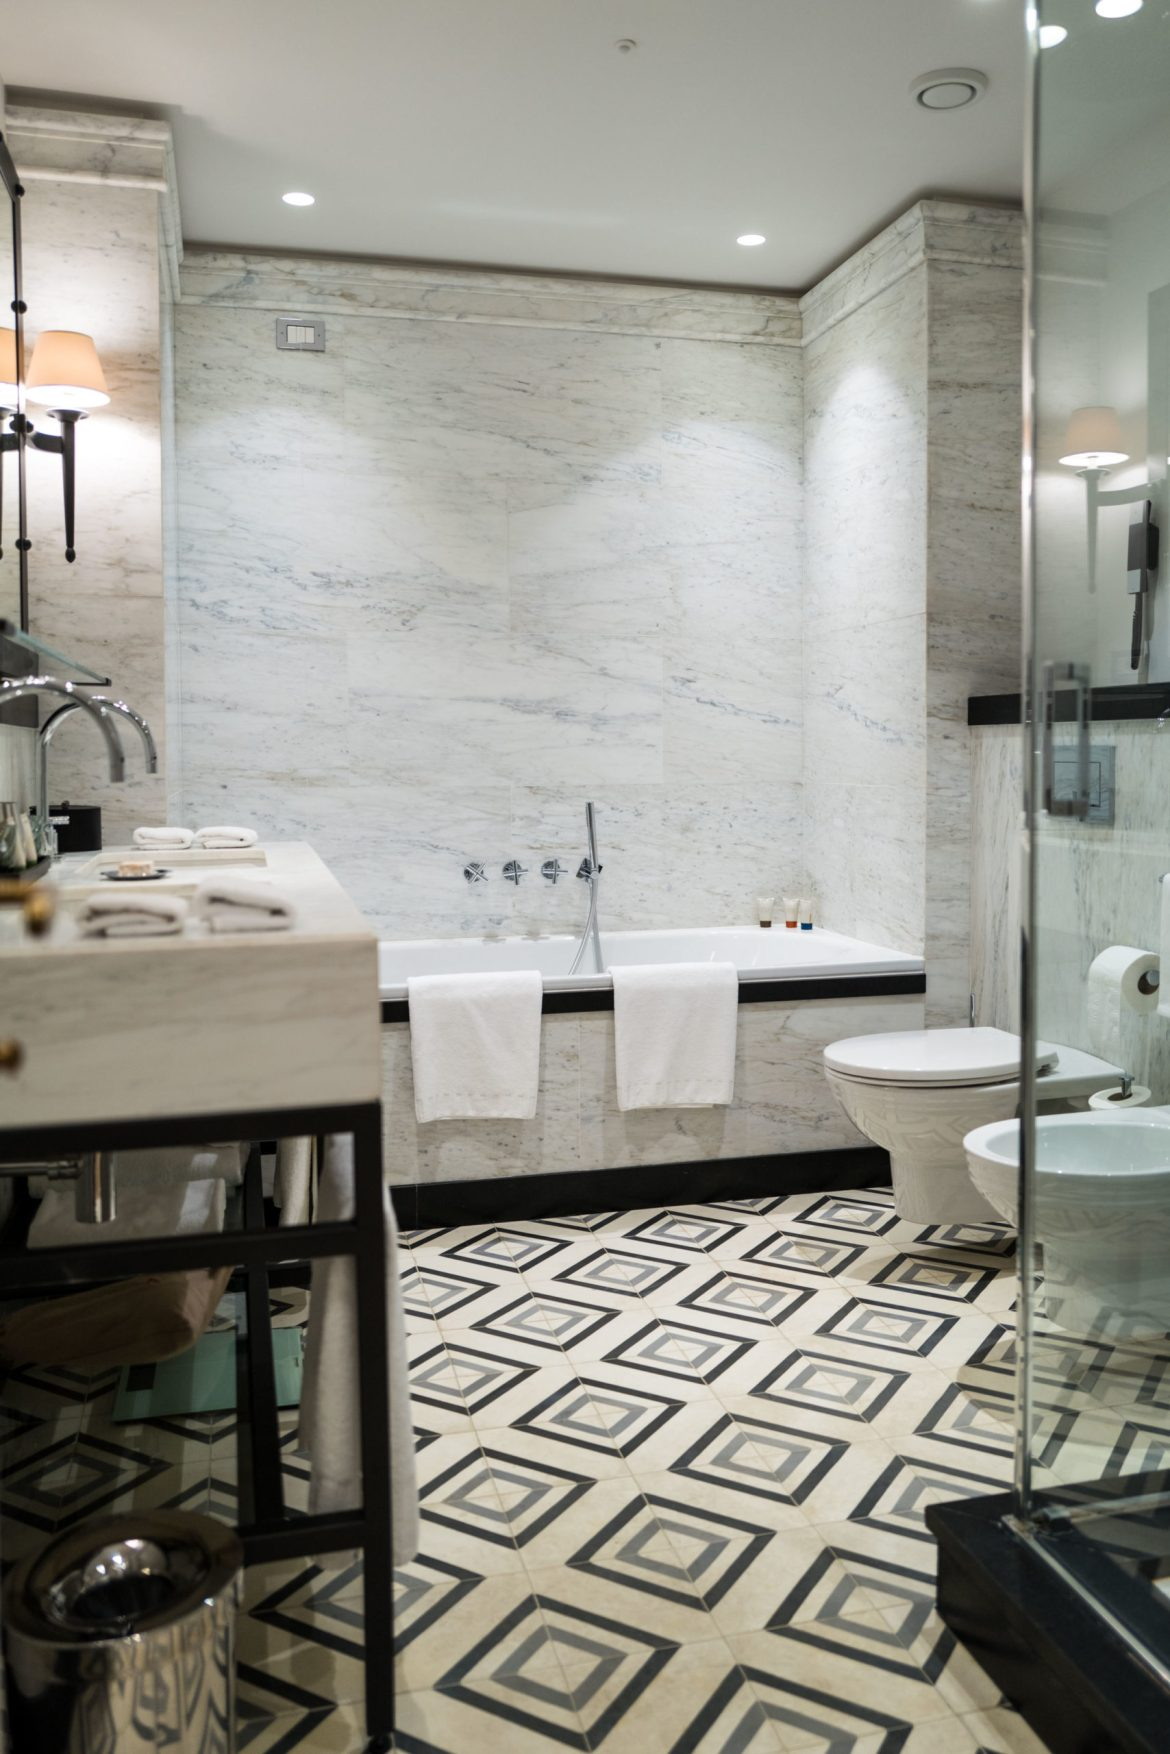 Draw a bubblebath after a long day of walking in Rome at Rocco Forte's Hotel de la Ville Rome - The Taste Edit #rome #hotel #decor #travel